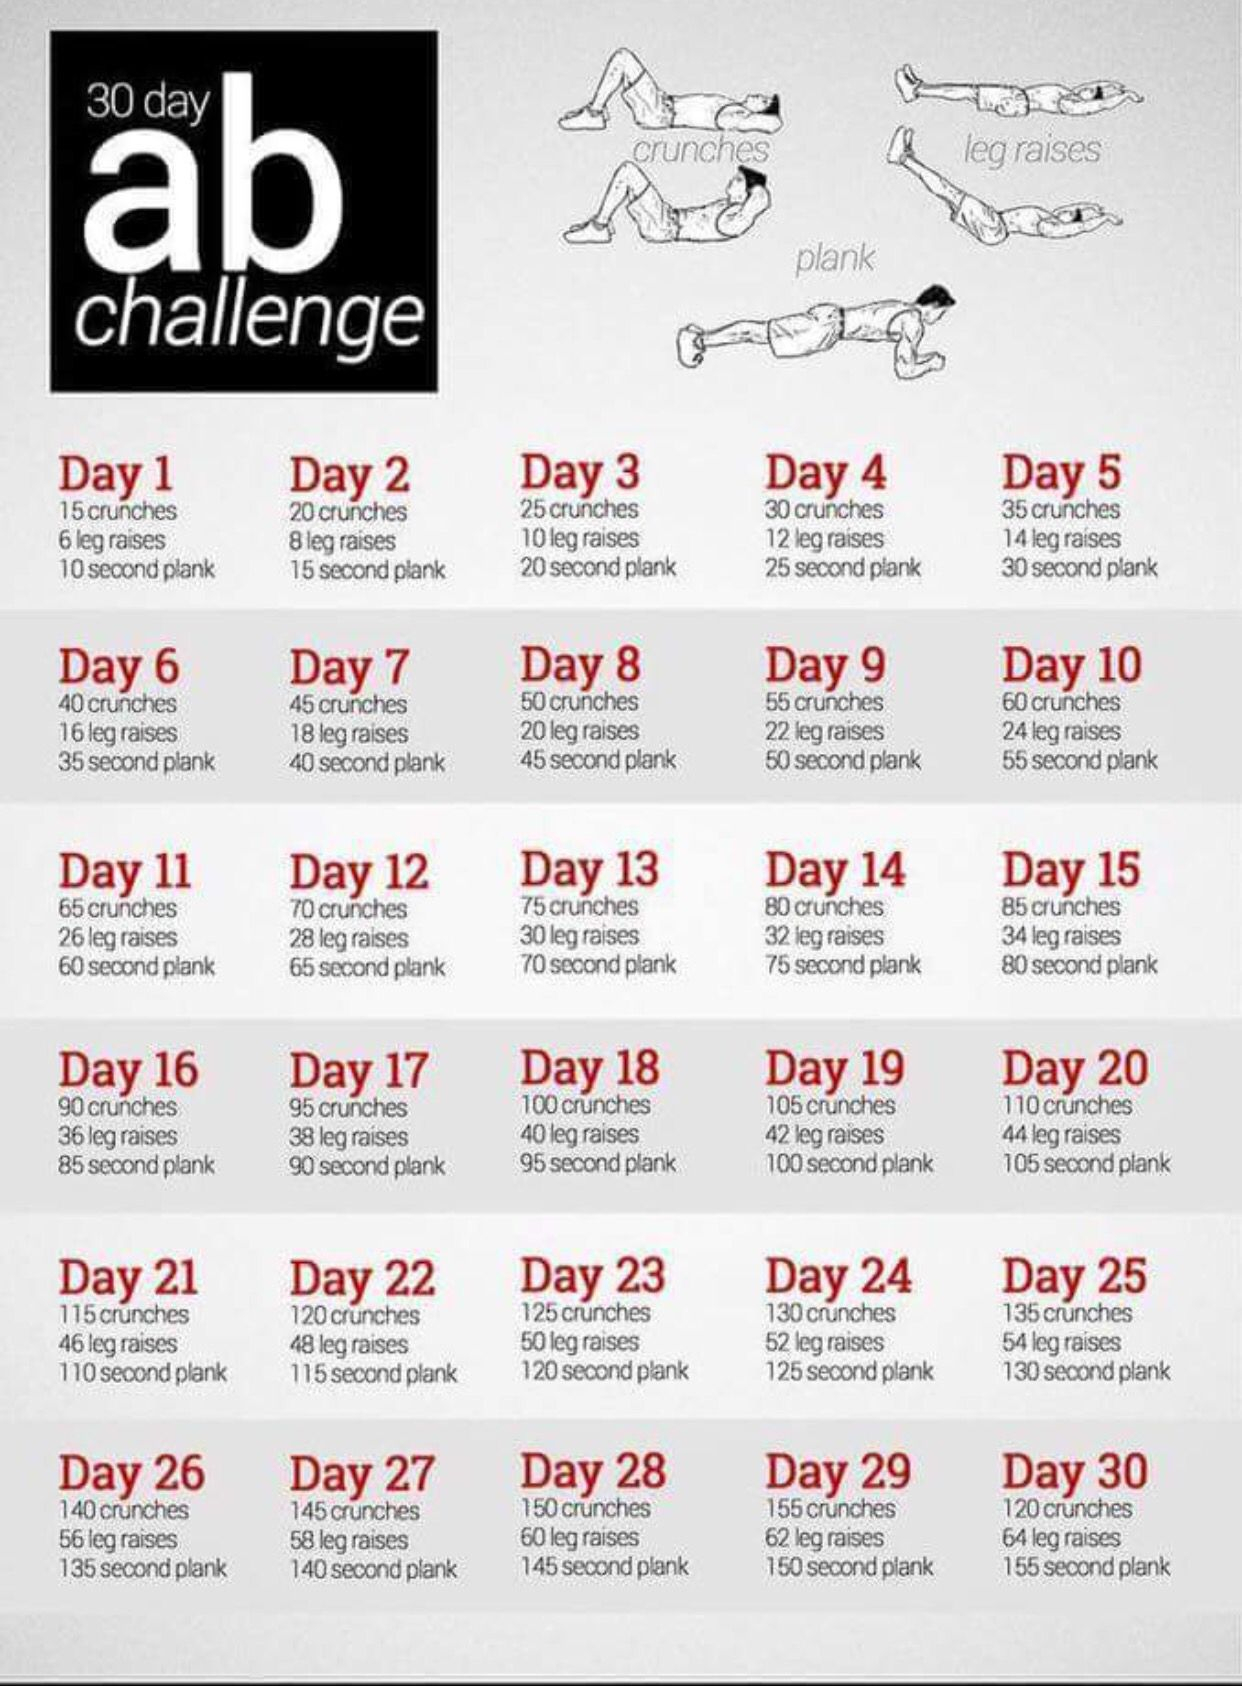 30 Day Ab Challenge | 30 Day Ab Workout, 30 Day Ab Challenge Regarding 30 Day Ab Workout Schedule